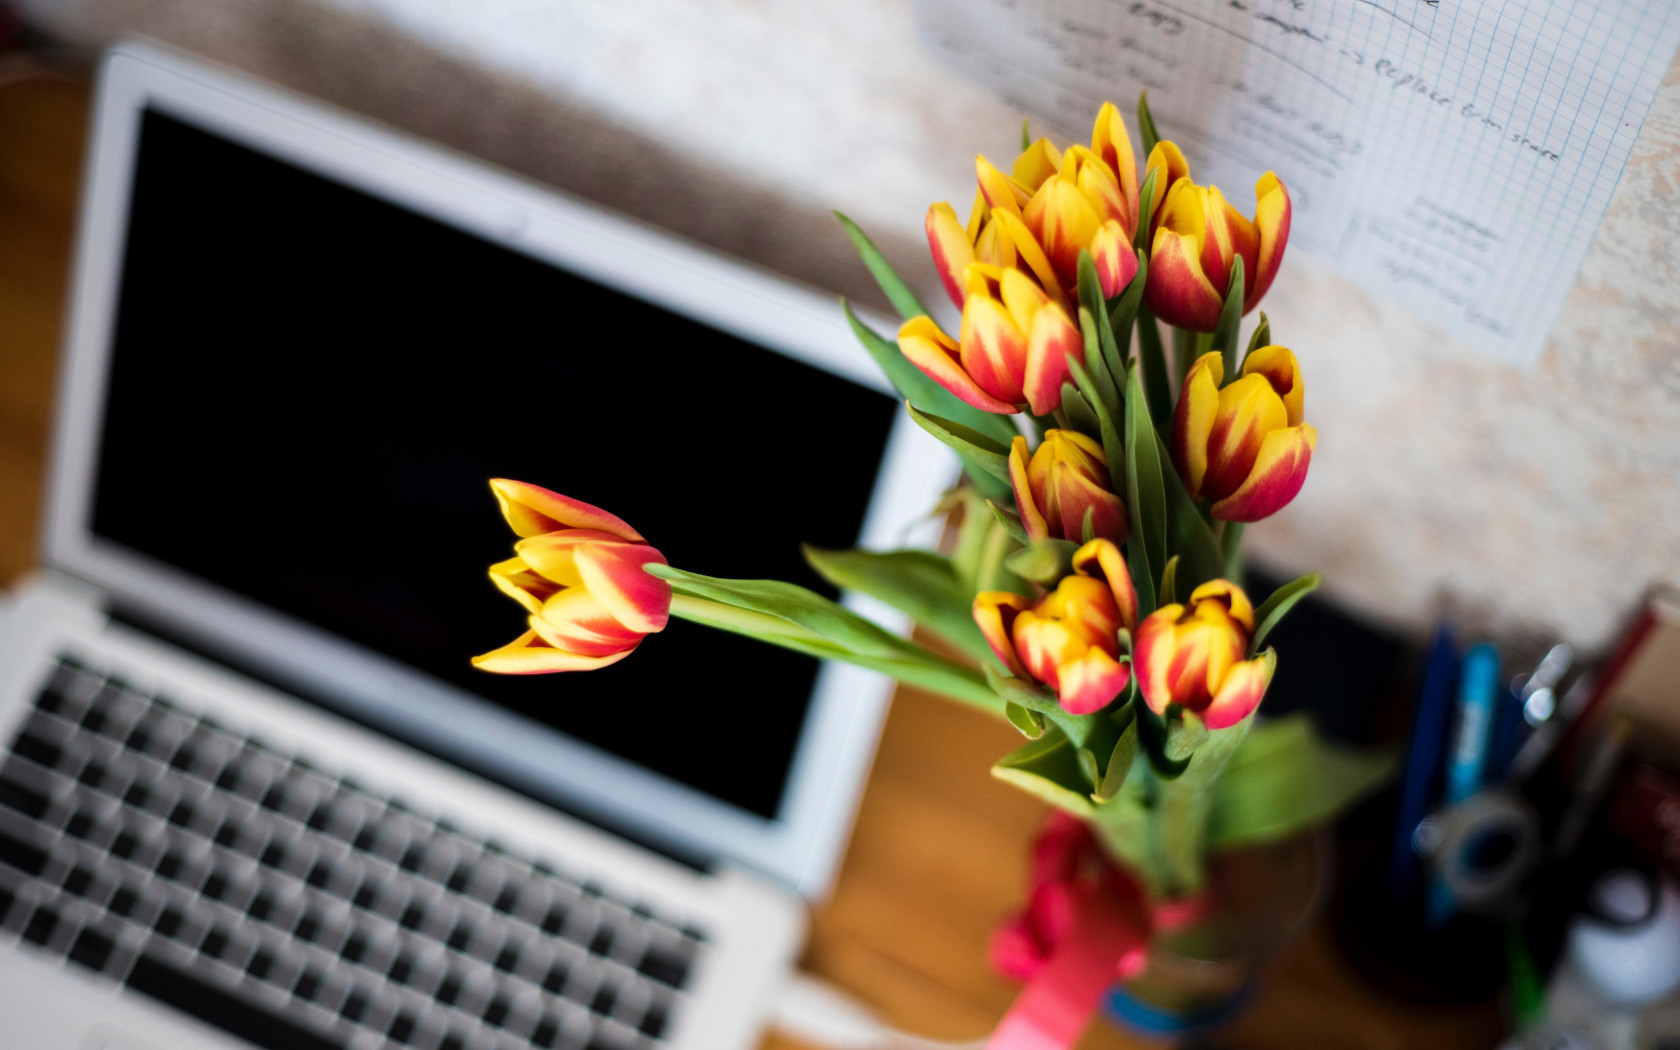 Laptop and tulips bouquet wallpaper 1680x1050